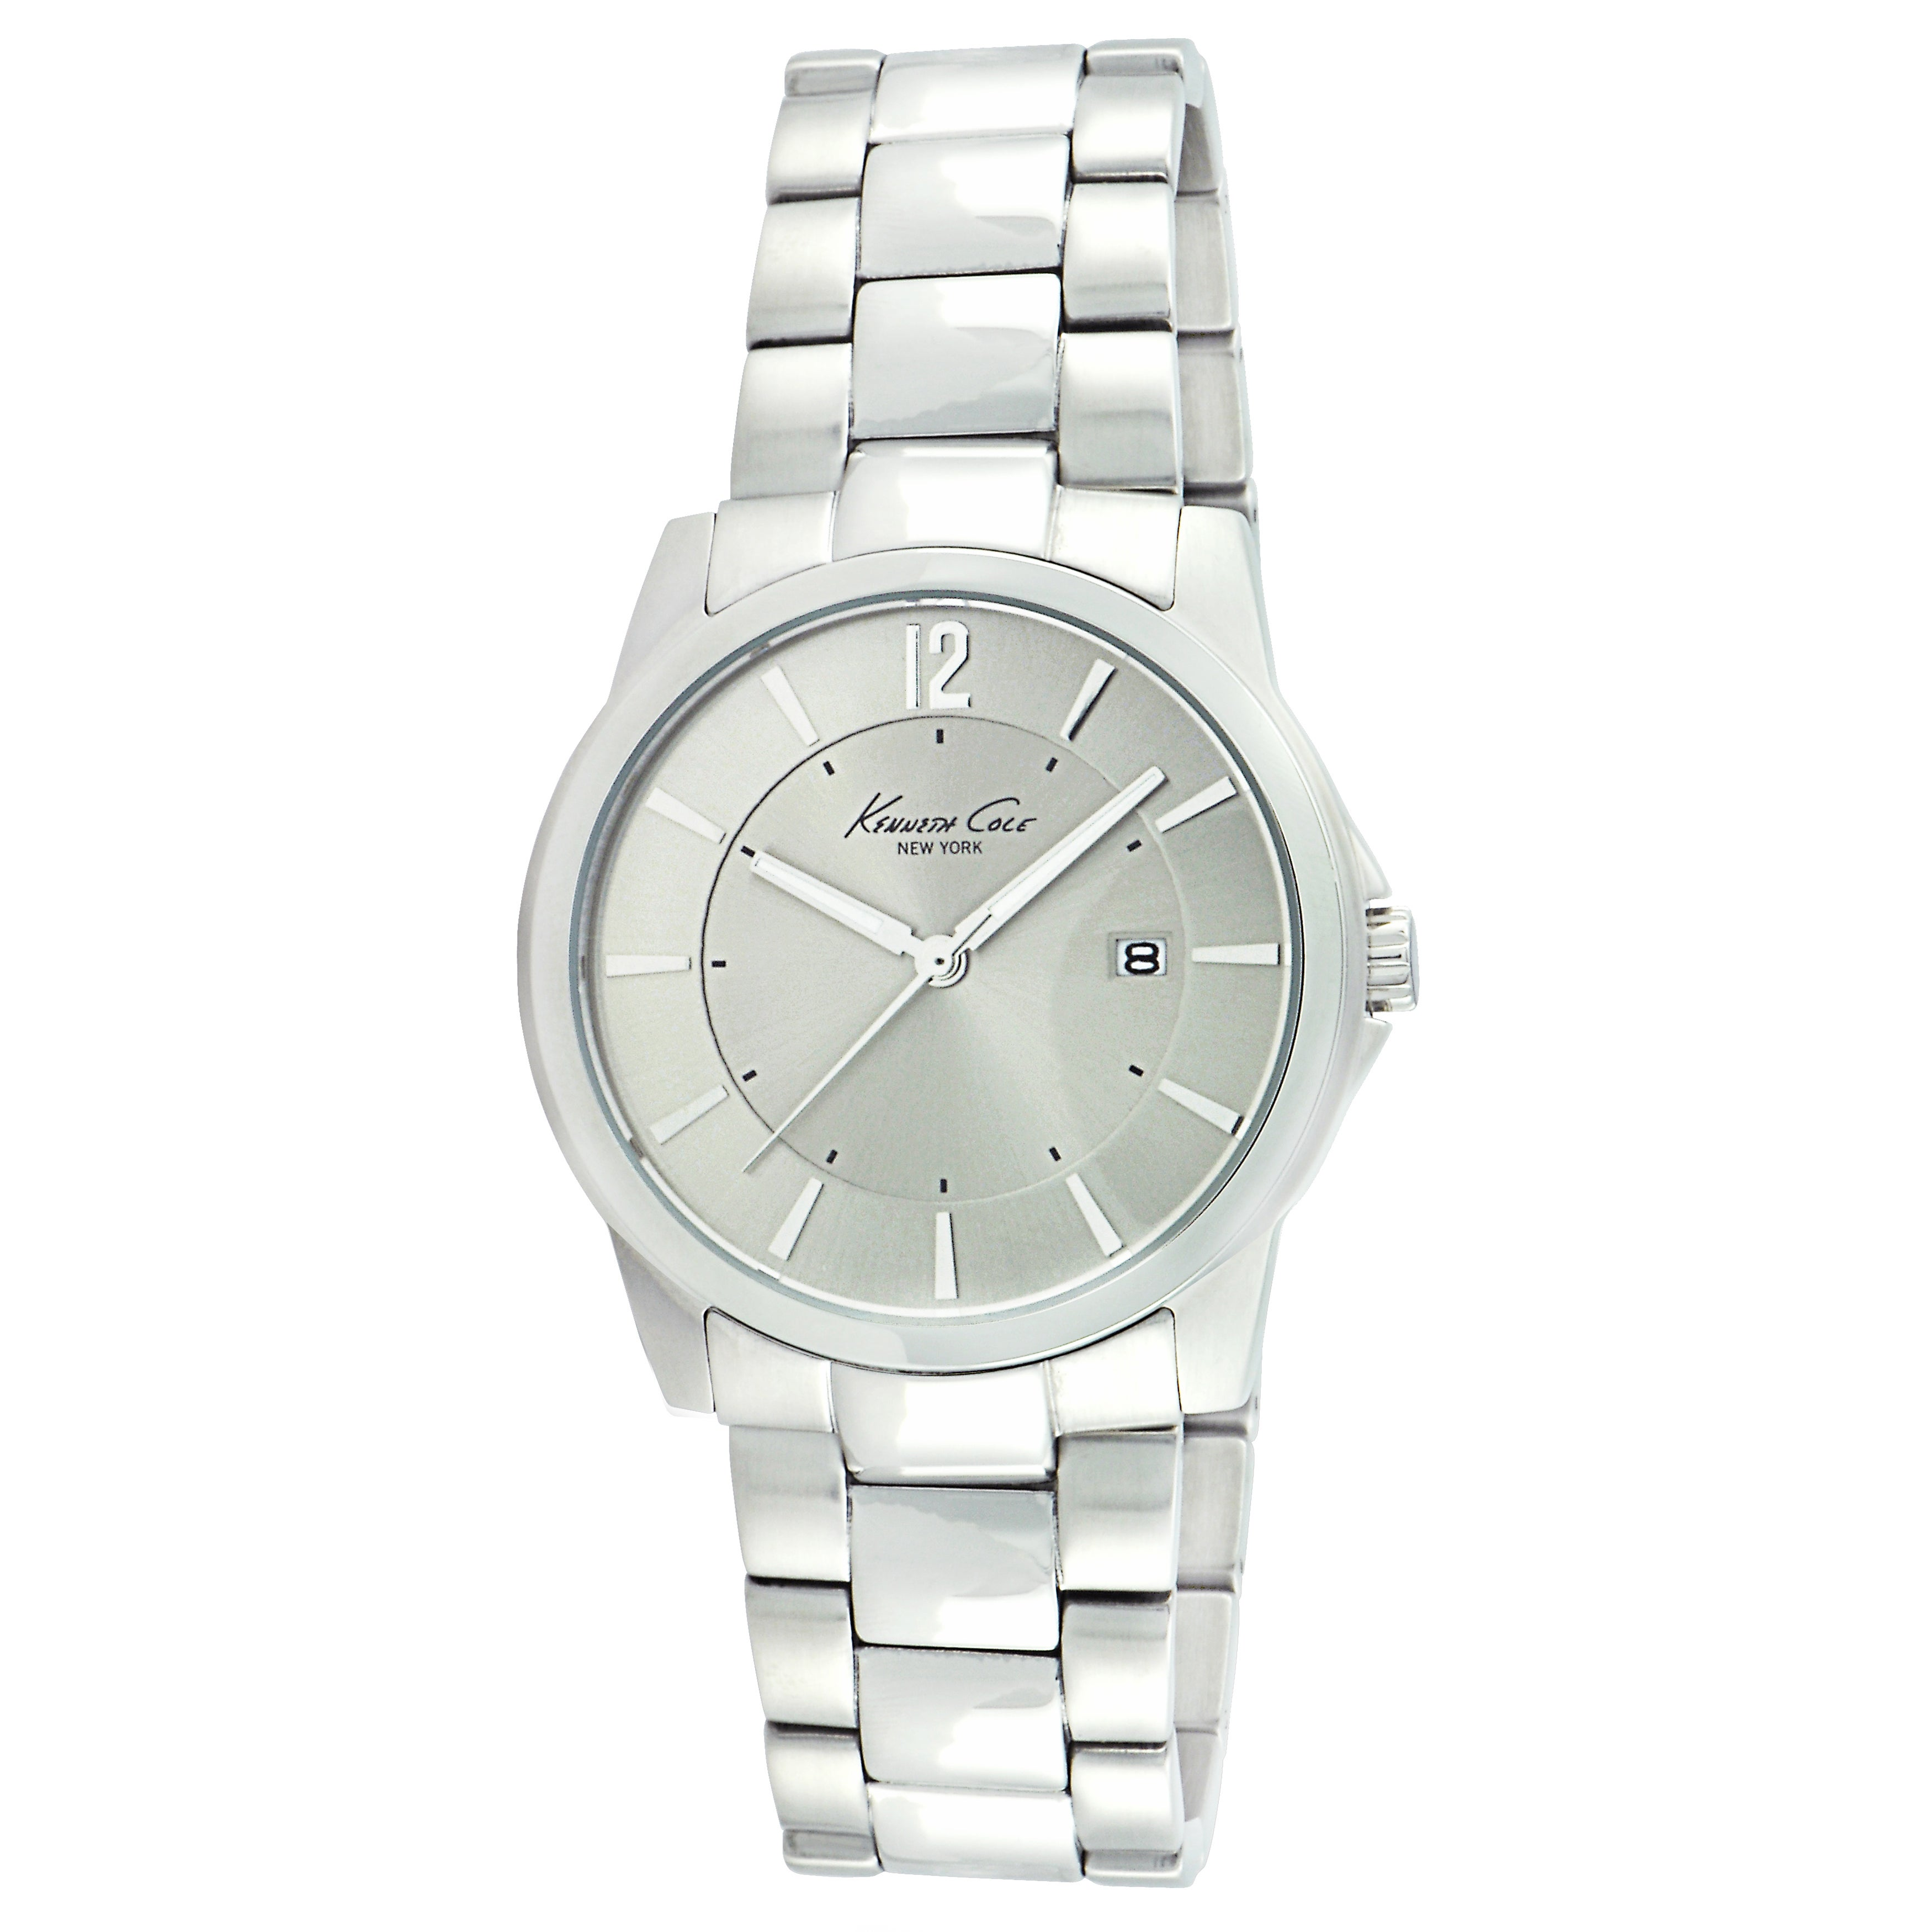 Kenneth Cole New York Men's Stainless Steel Analog Watch